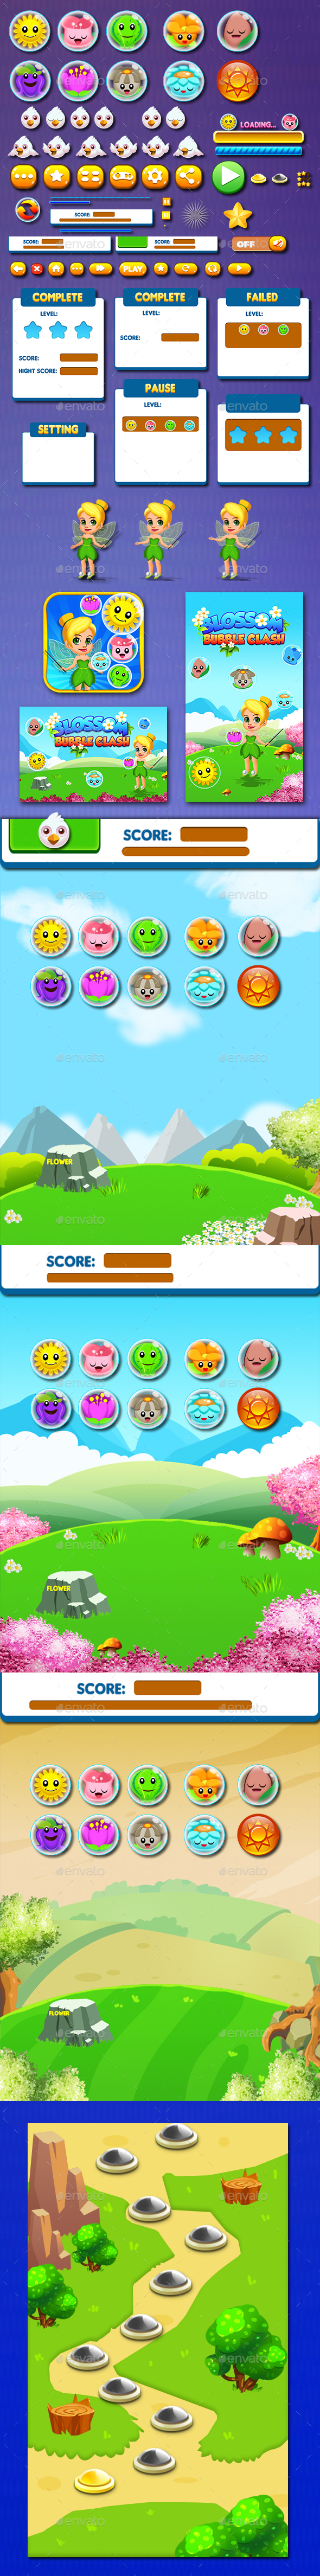 Bubble Shooter Unity Asset Reskin : Blossom - Game Kits Game Assets